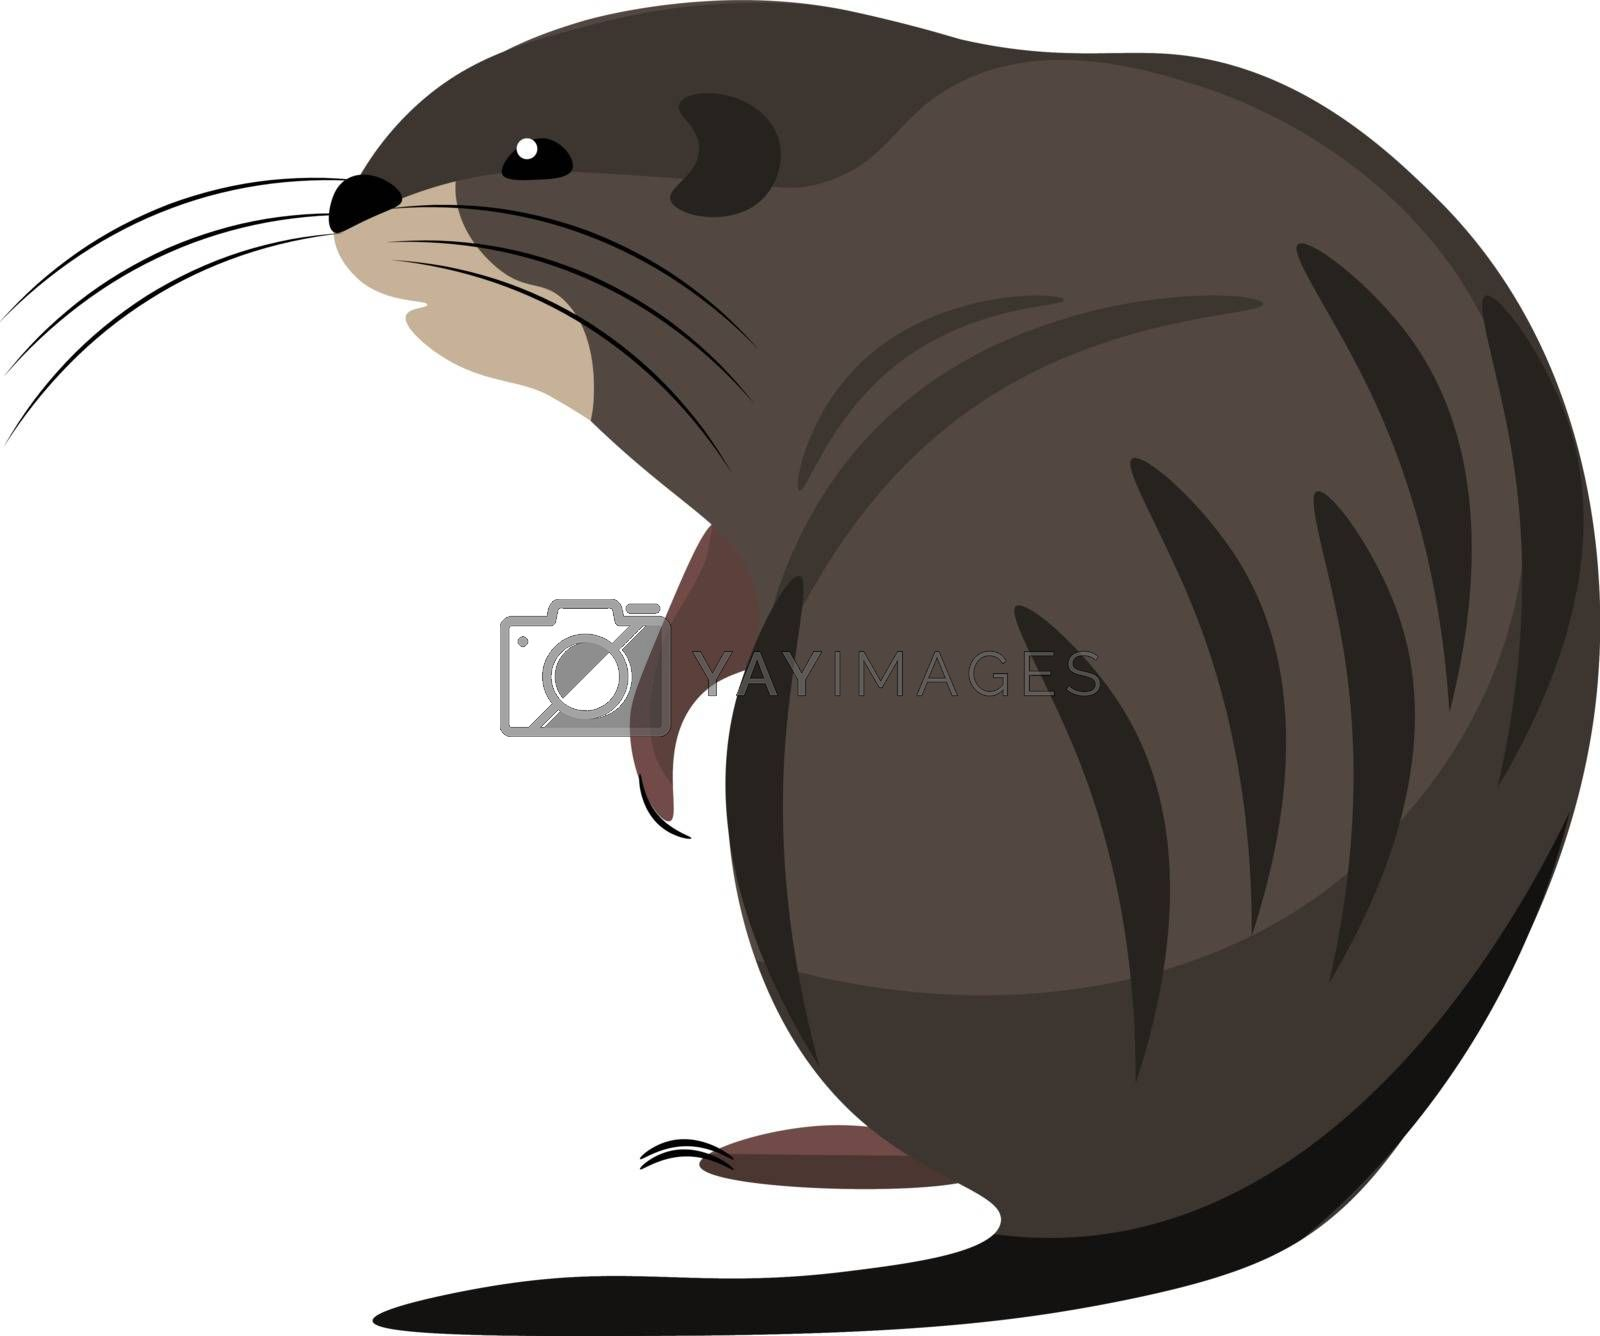 Royalty free image of Cartoon muskrat set on isolated white background viewed from beh by Morphart